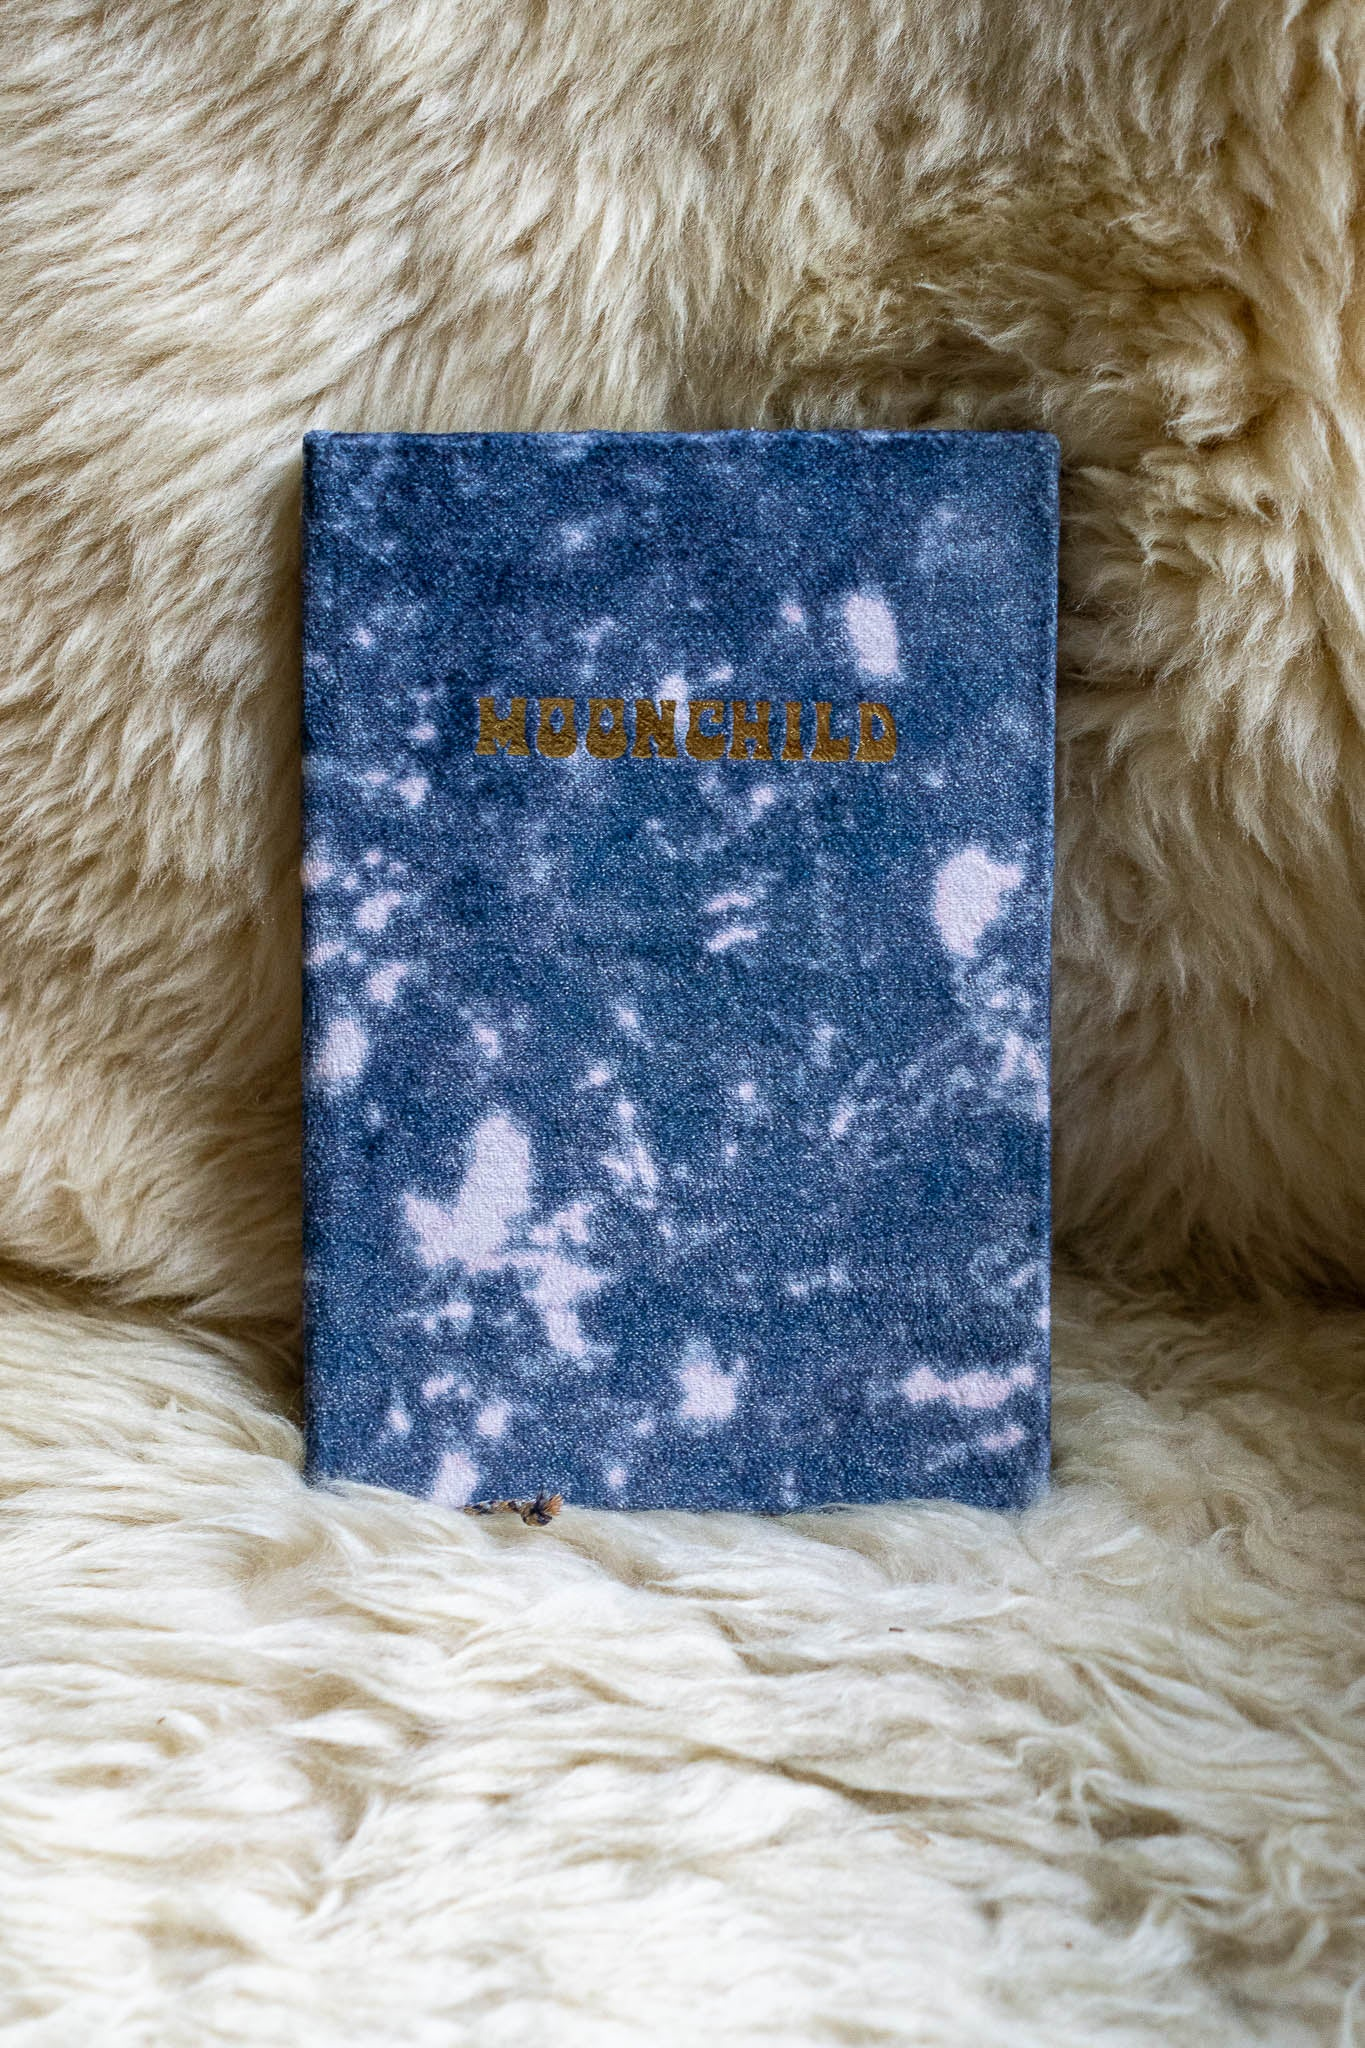 Moonchild Slim Velvet Journal - The Canyon